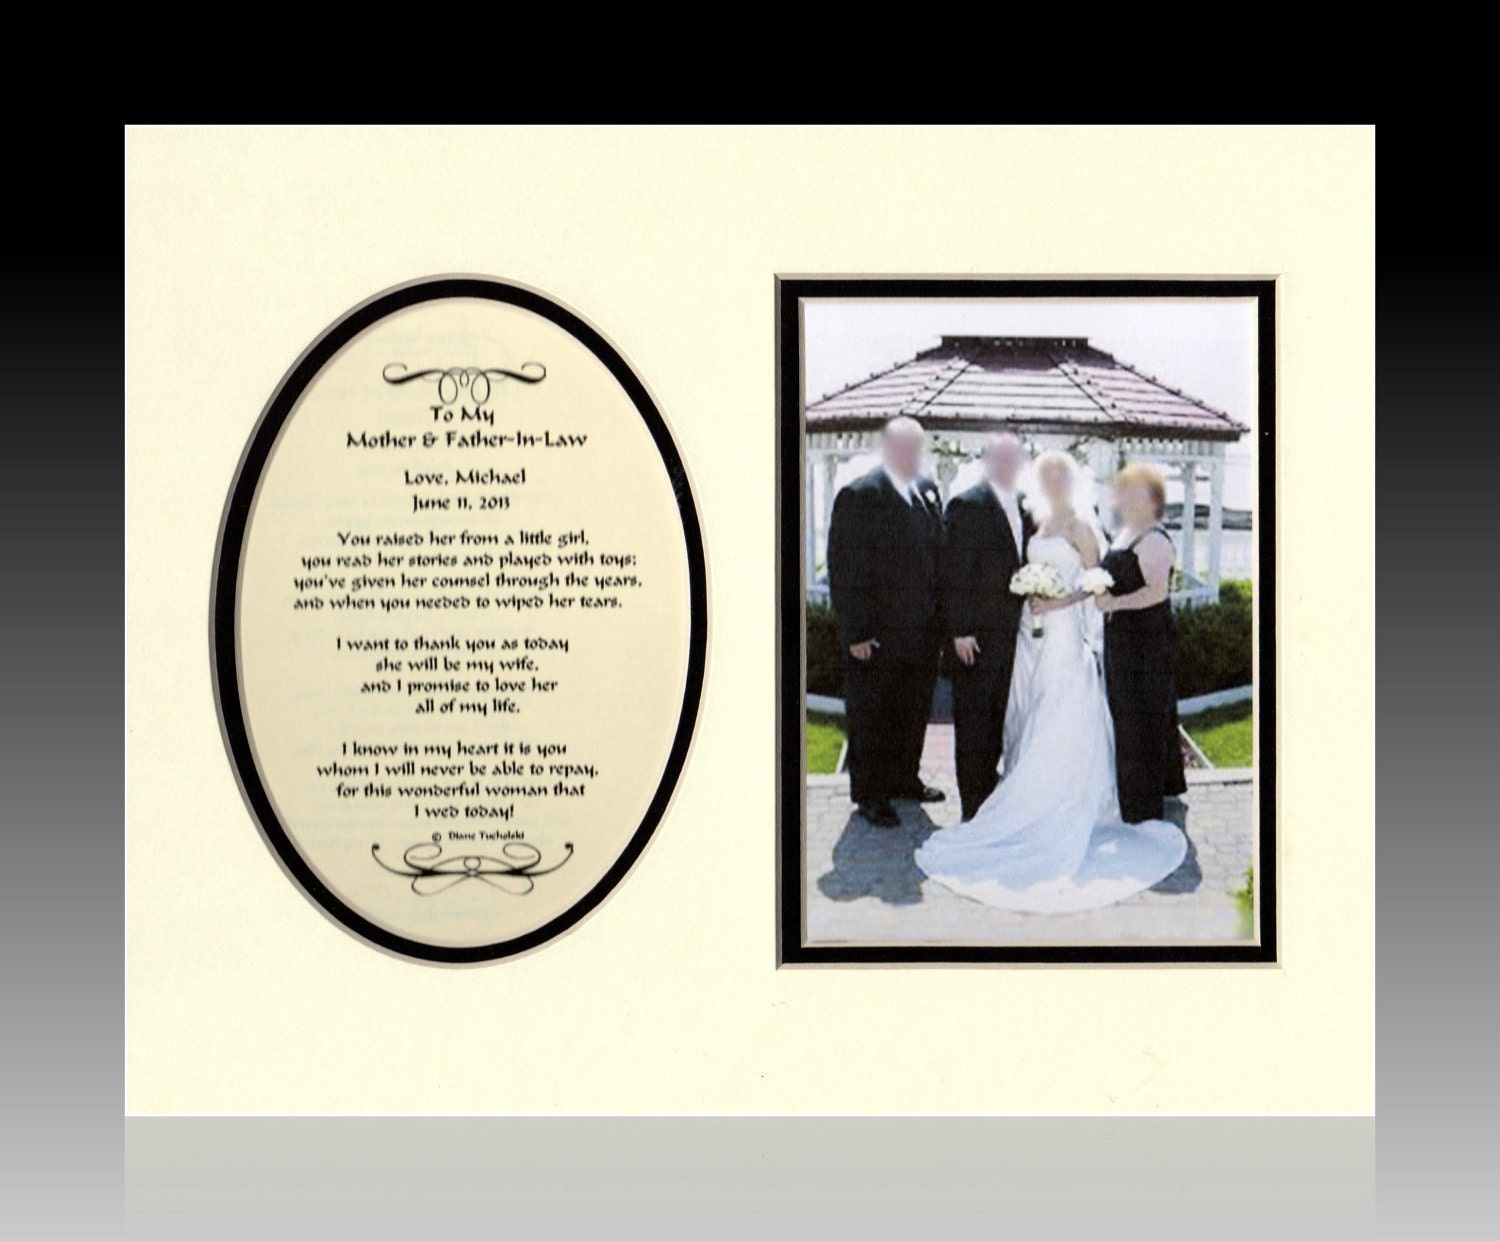 Father In Law Wedding Gifts: Wedding Mother And Father In Law Personalized Gift Wedding